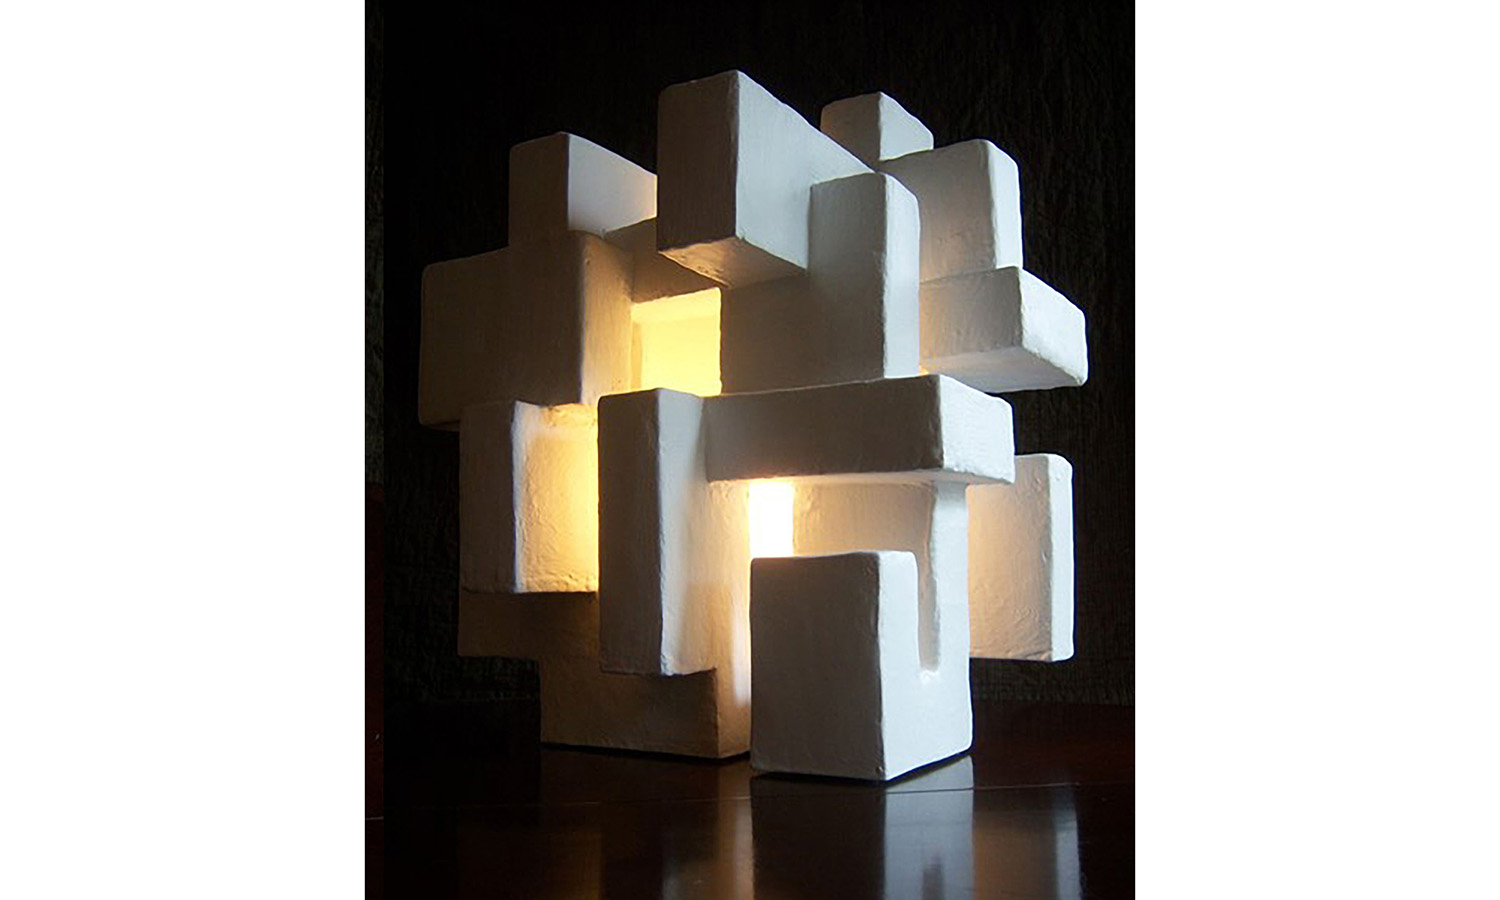 "ABITARE LIGHT SCULPTURE, mixed media, 18"" x 16"" x 12"", 2012"